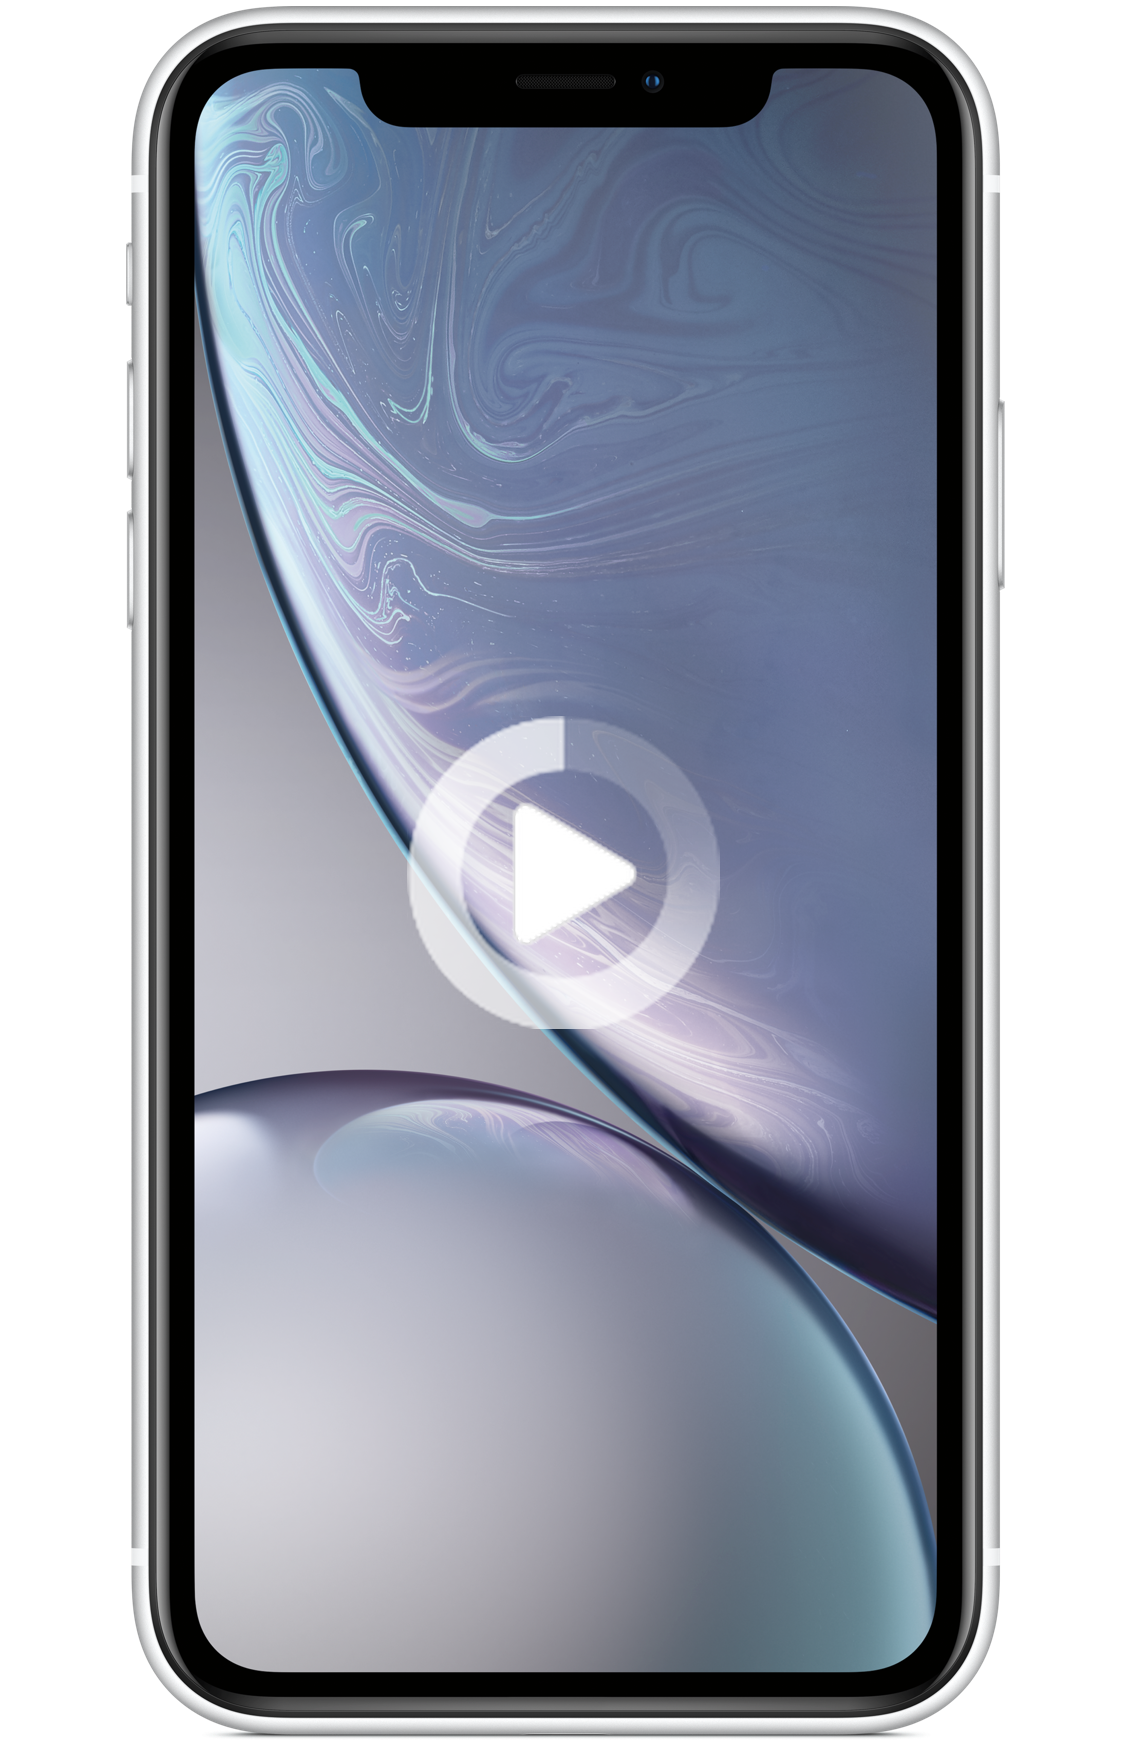 Apple Iphone Xr 64gb White Boost Mobile Mobile Web Design Web Design Web Banner Design